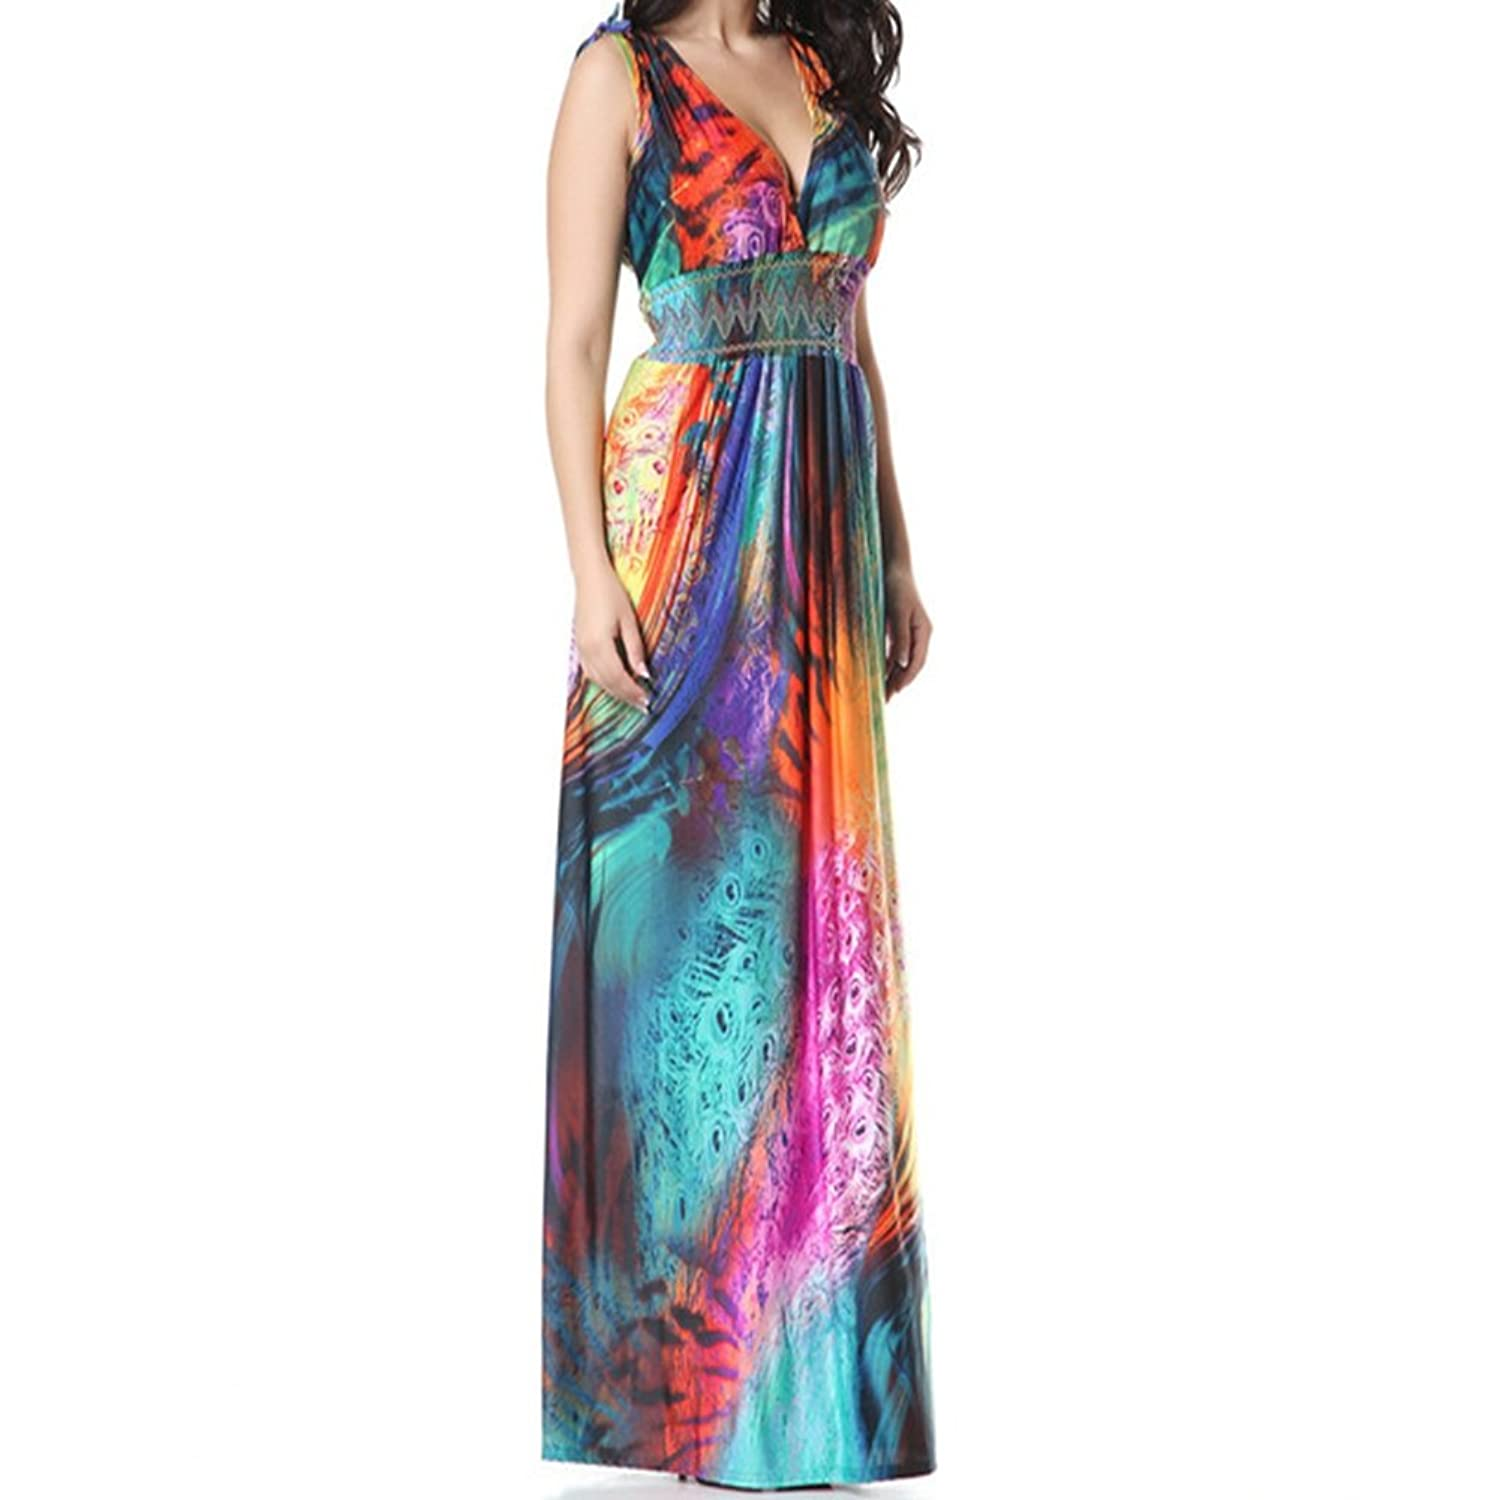 HUIJSNQ 2017 Women Summer Holiday Beach Dress Plus Size 7XL Printed Long Maxi Dress Robe at Amazon Womens Clothing store: